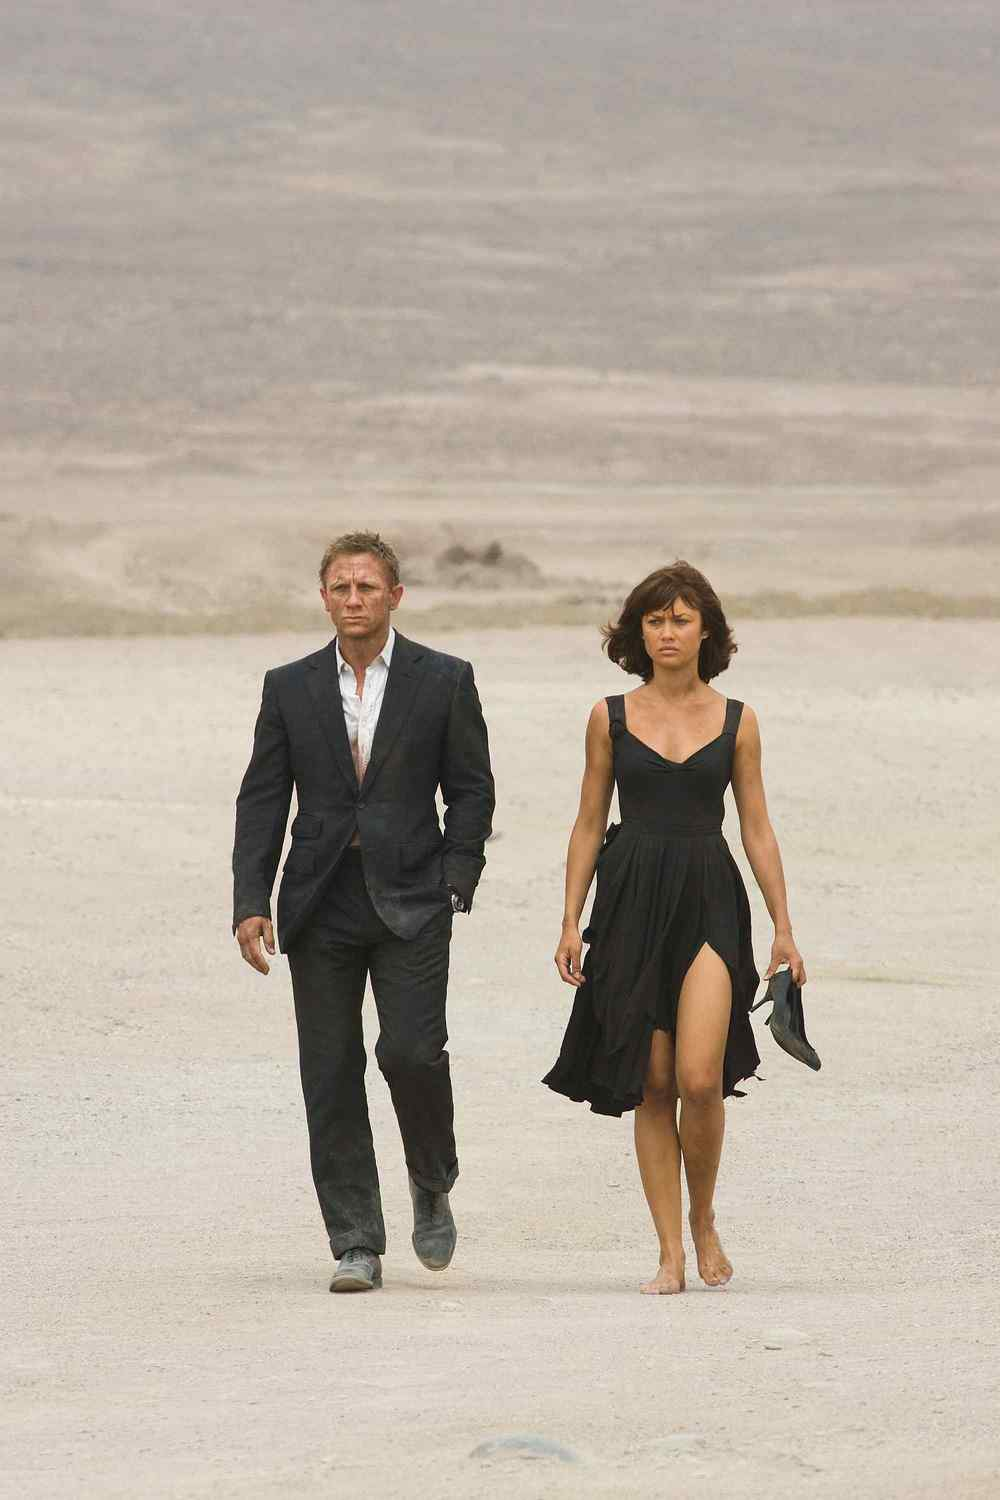 When I worked as a Stylist, I took Olga Kurylenko as a model on a shoot to Mexico, she was one of the nicest, sweetest and funny girls you could wish for on a trip! Here in Quantum of Solace.